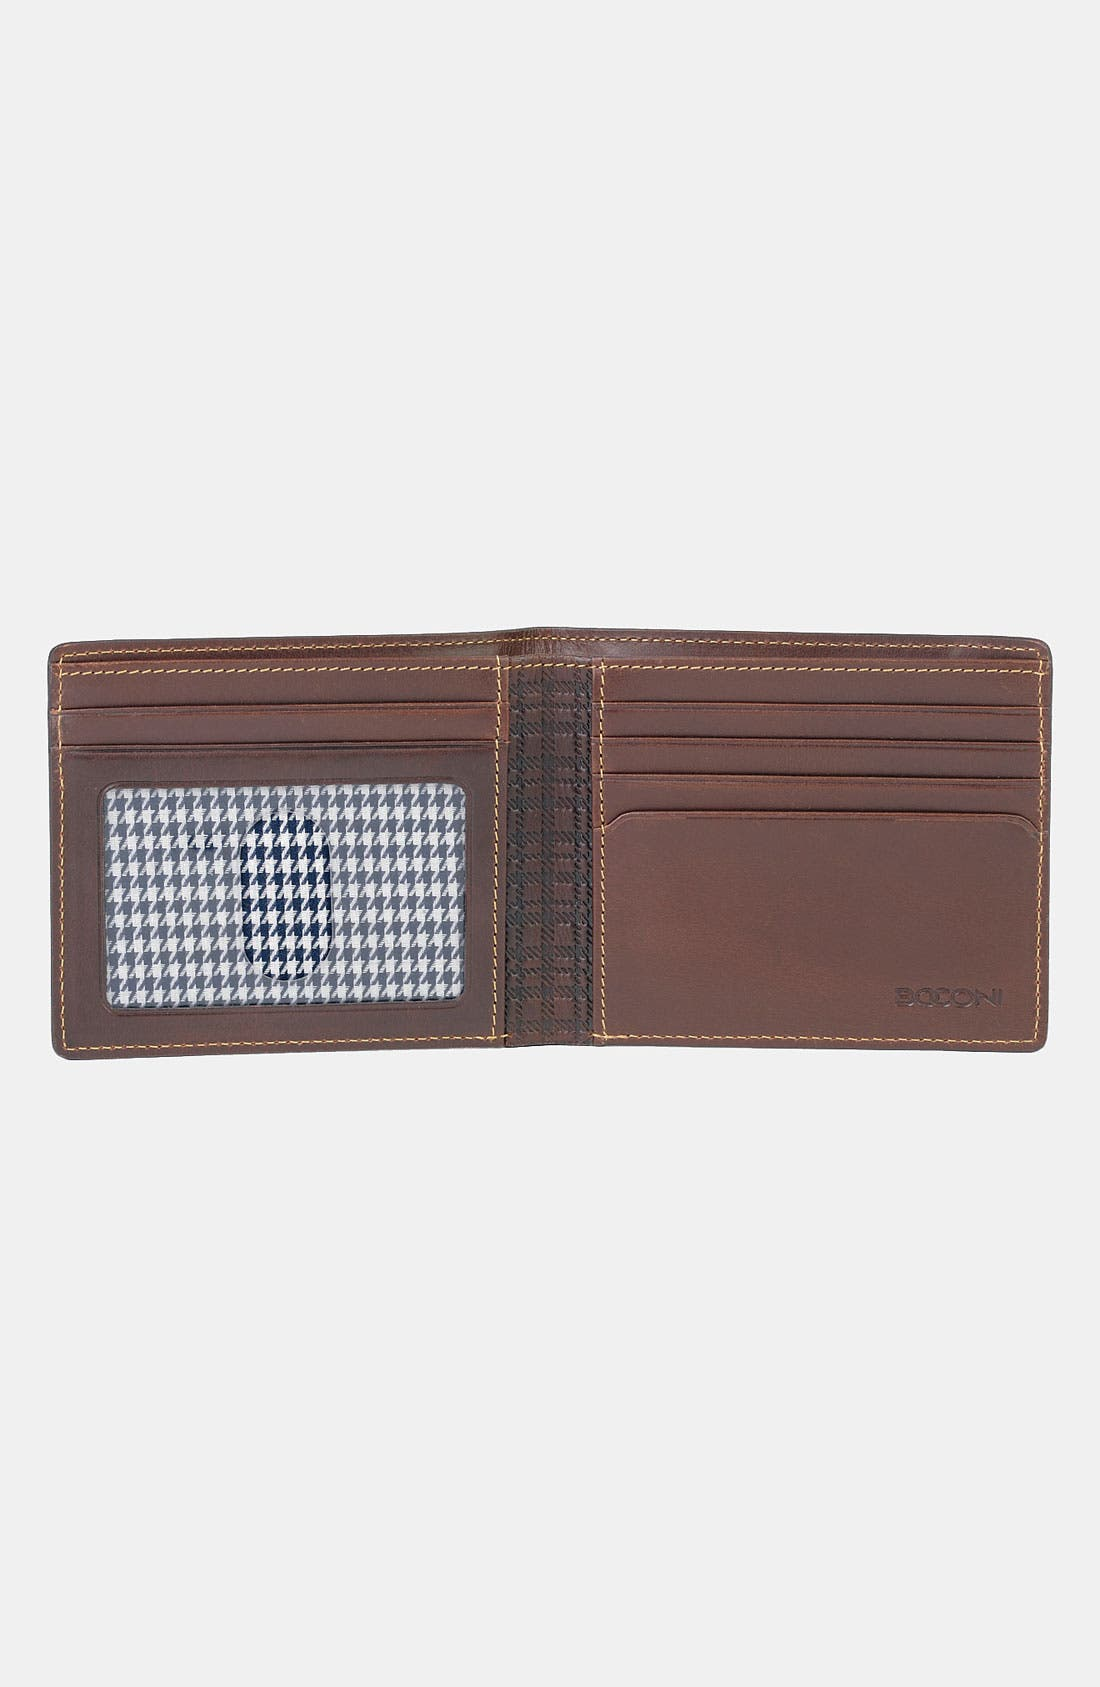 'Bryant' RFID Blocker Slimfold Wallet,                             Alternate thumbnail 5, color,                             ANTIQUE MAHOGANY